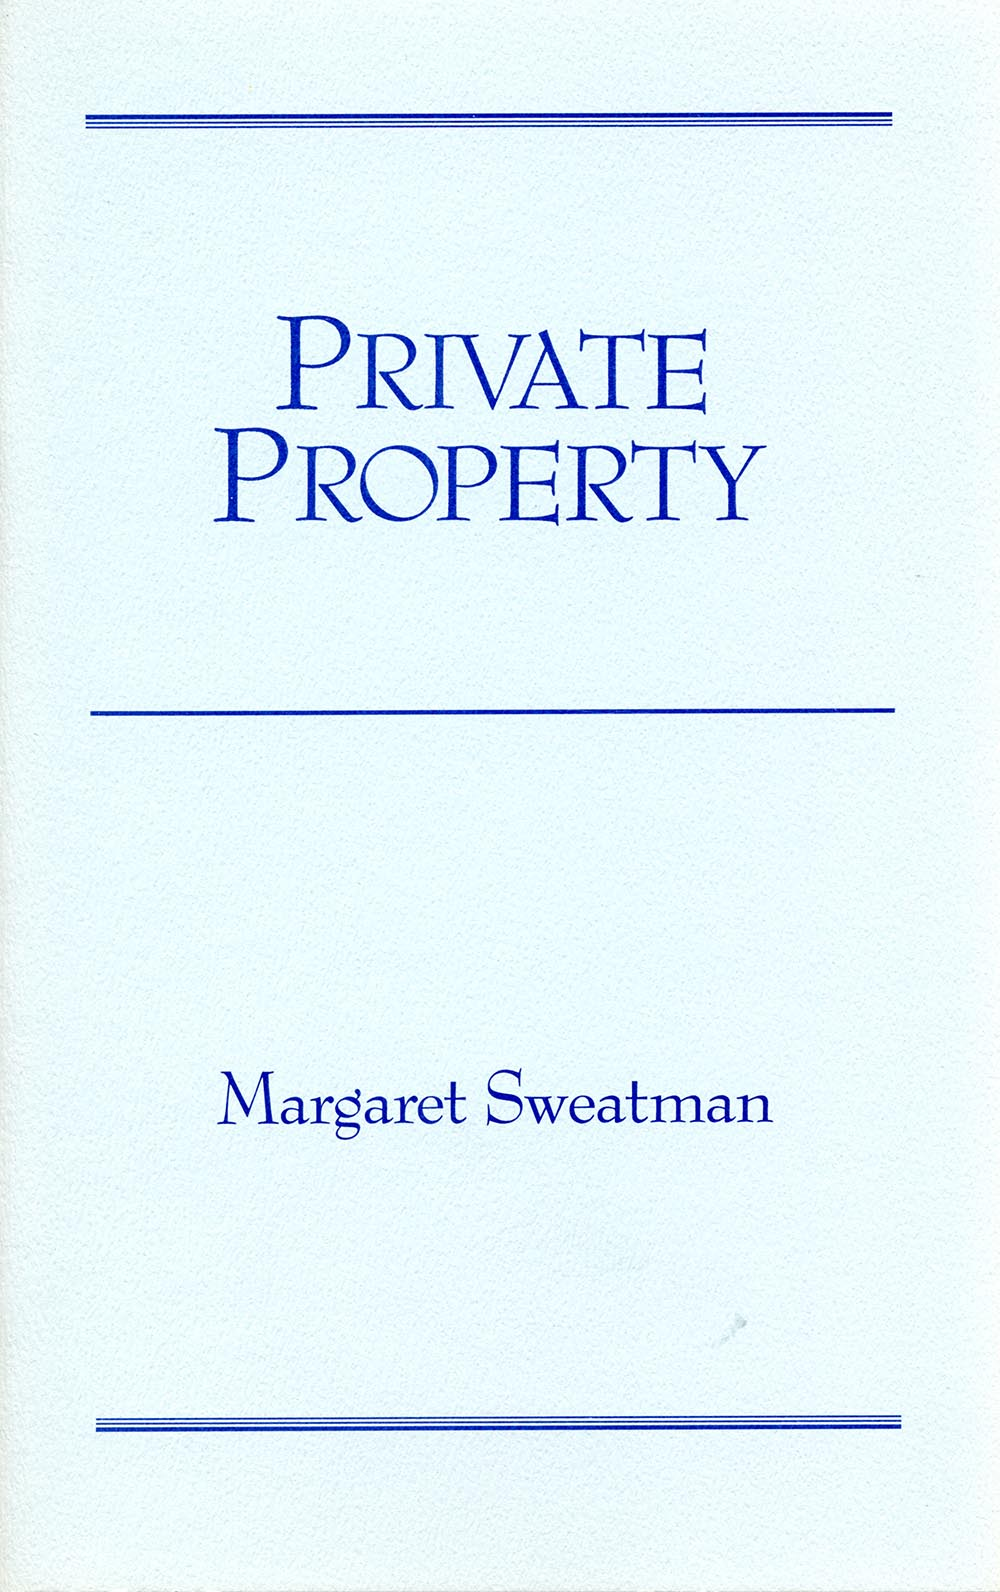 Private Property by Margaret Sweatman